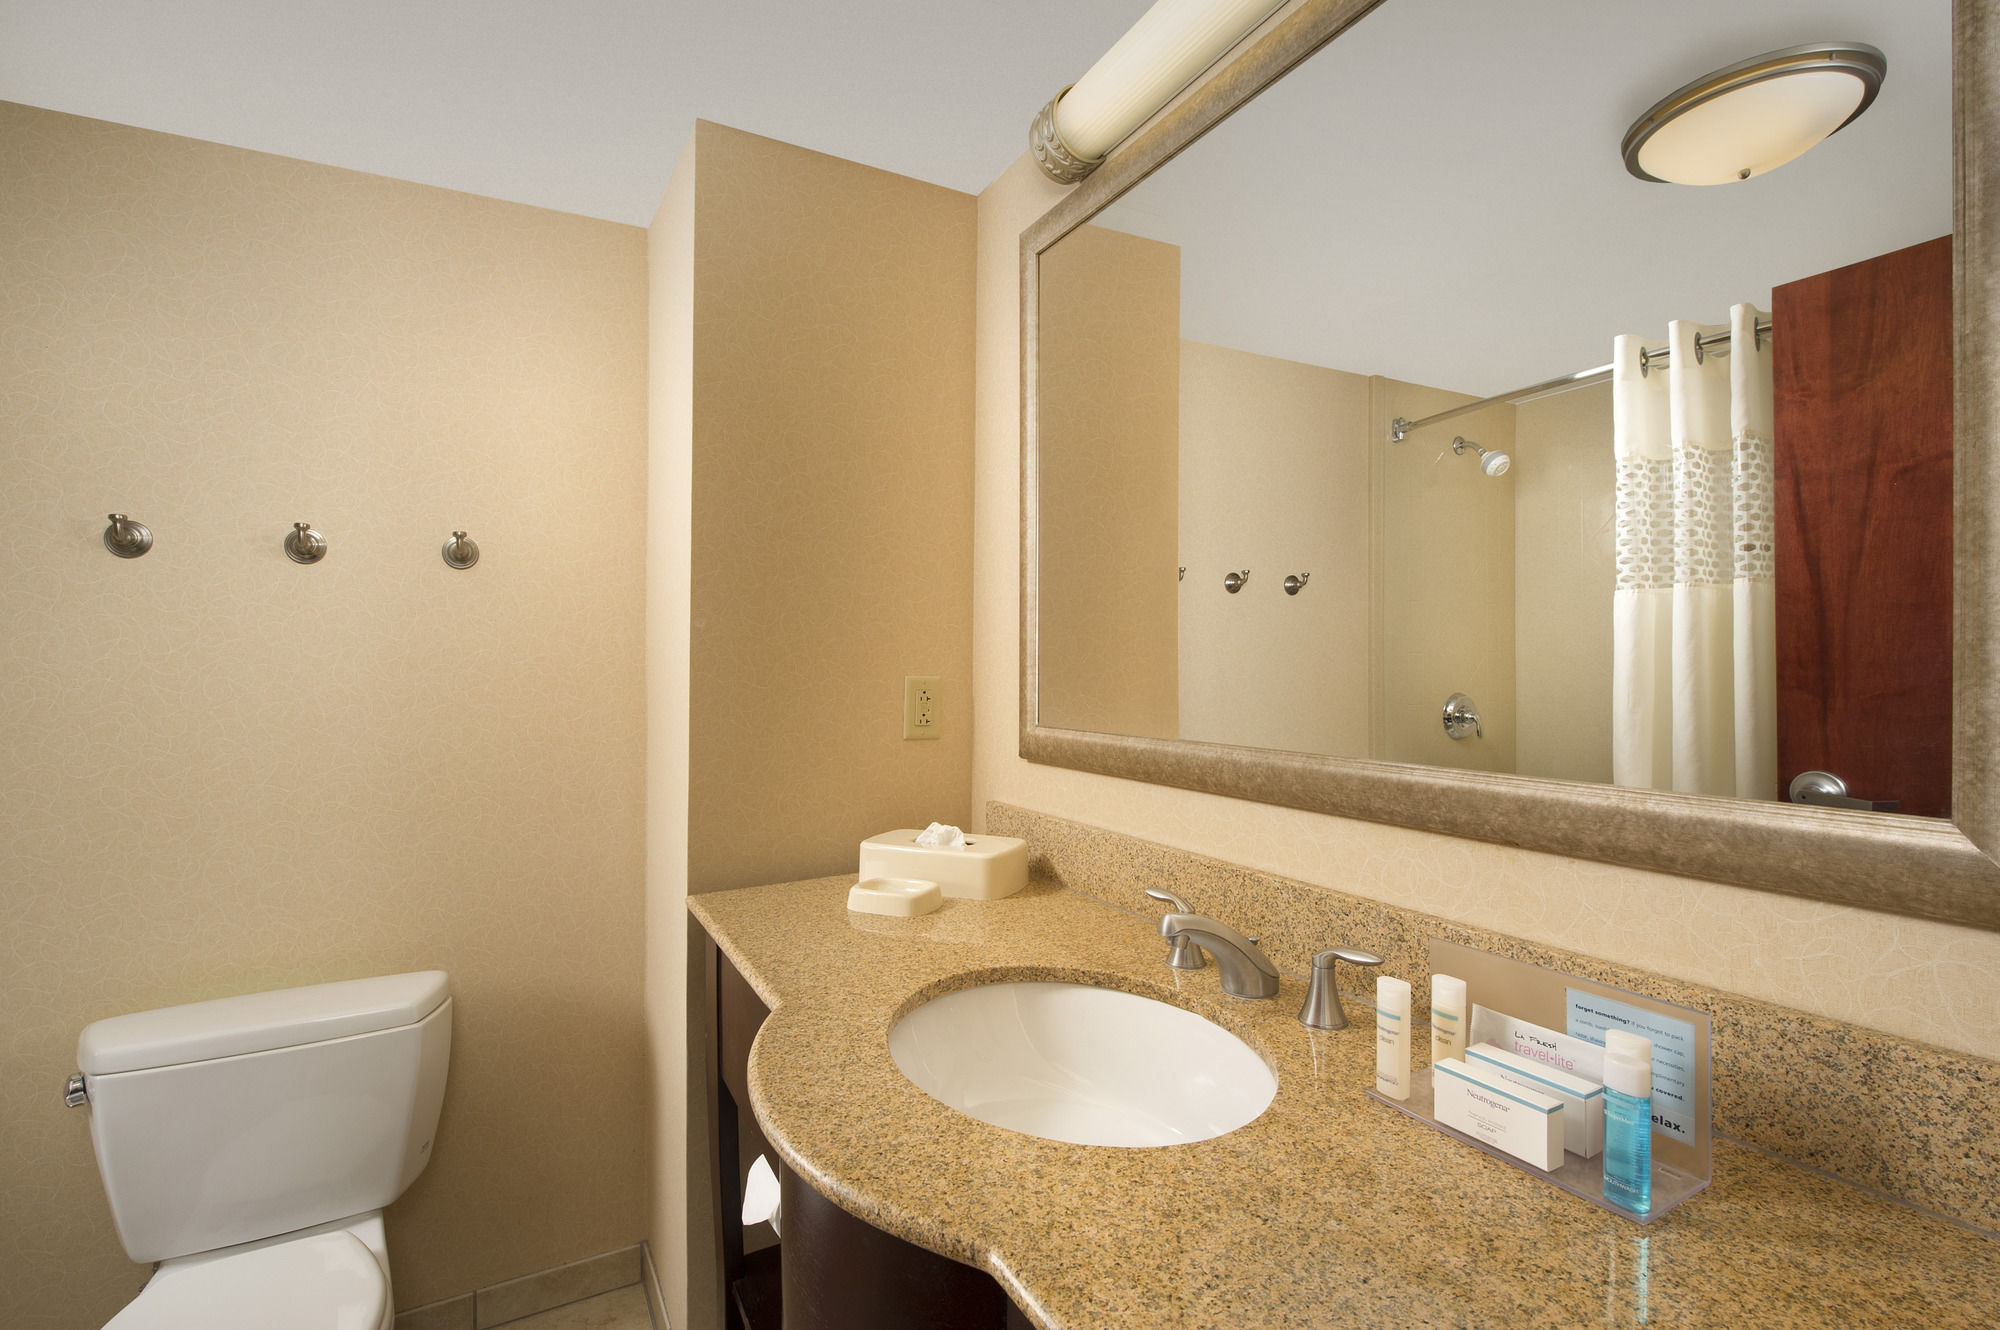 at syracuse bathroom ludlow lockport style syrac road the inn ny buckley comfort discount comforter suites vanities